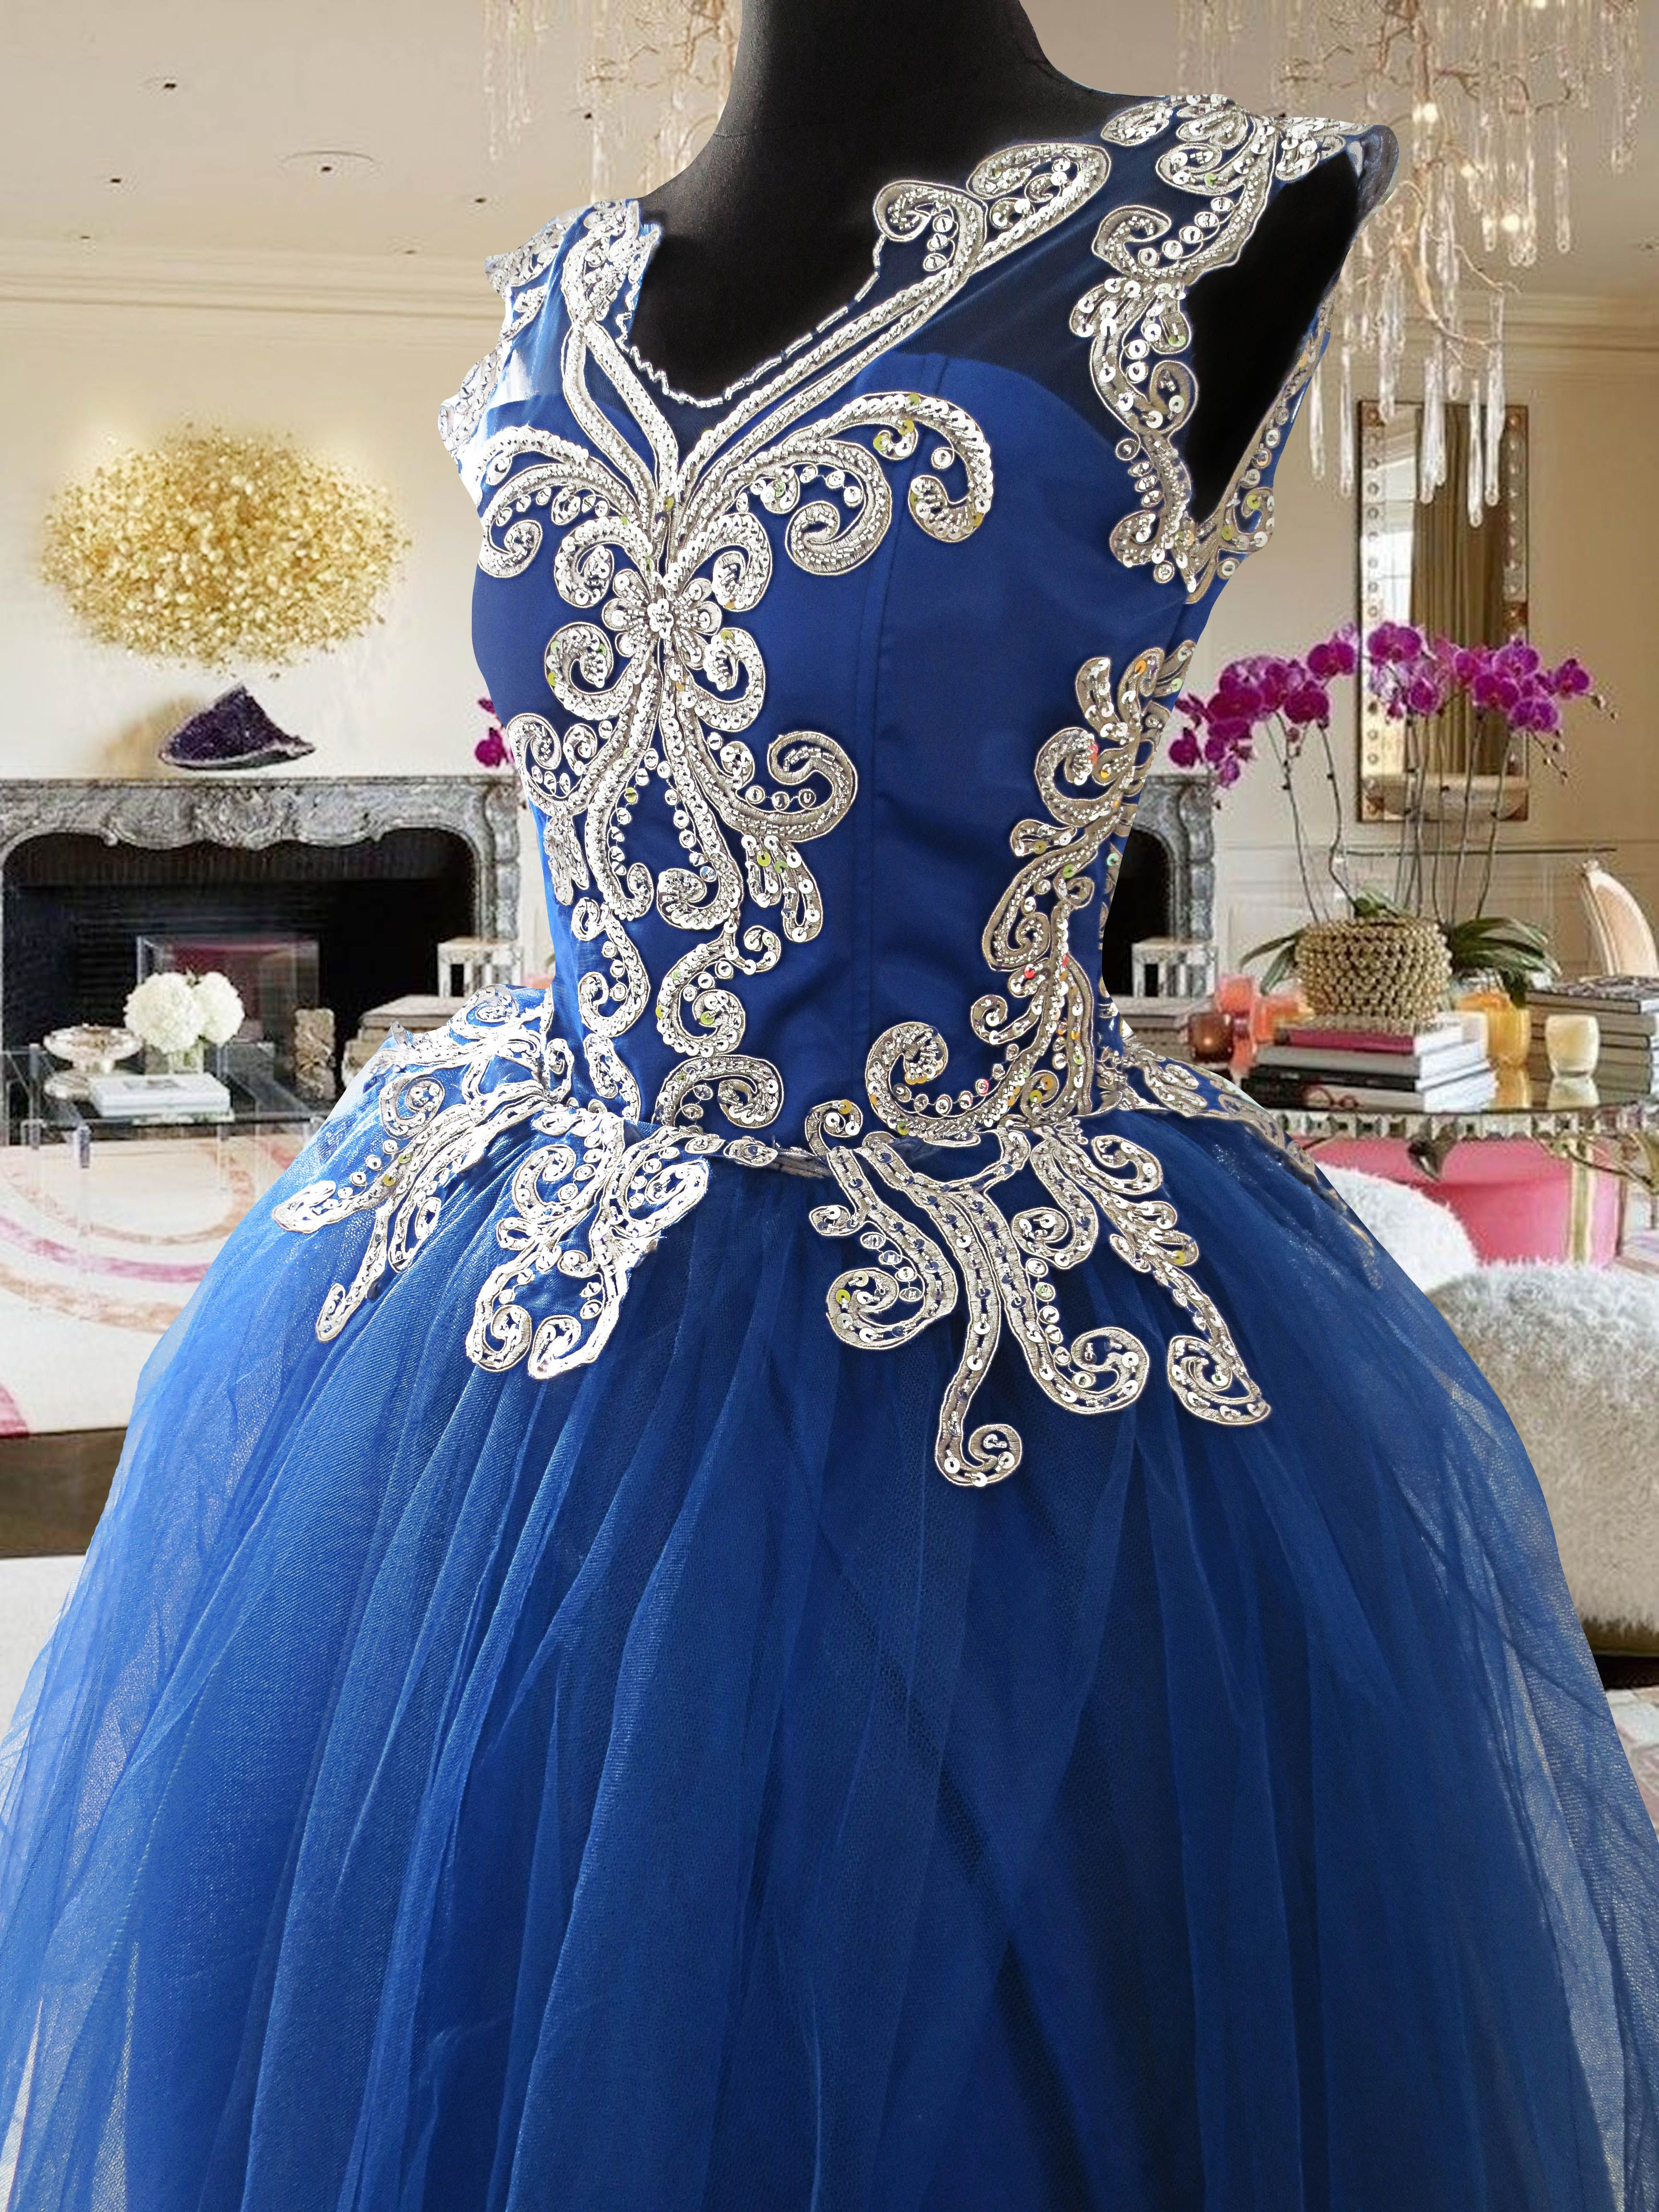 blue and white lace tulle ball gown for rent Php3,000. www ...